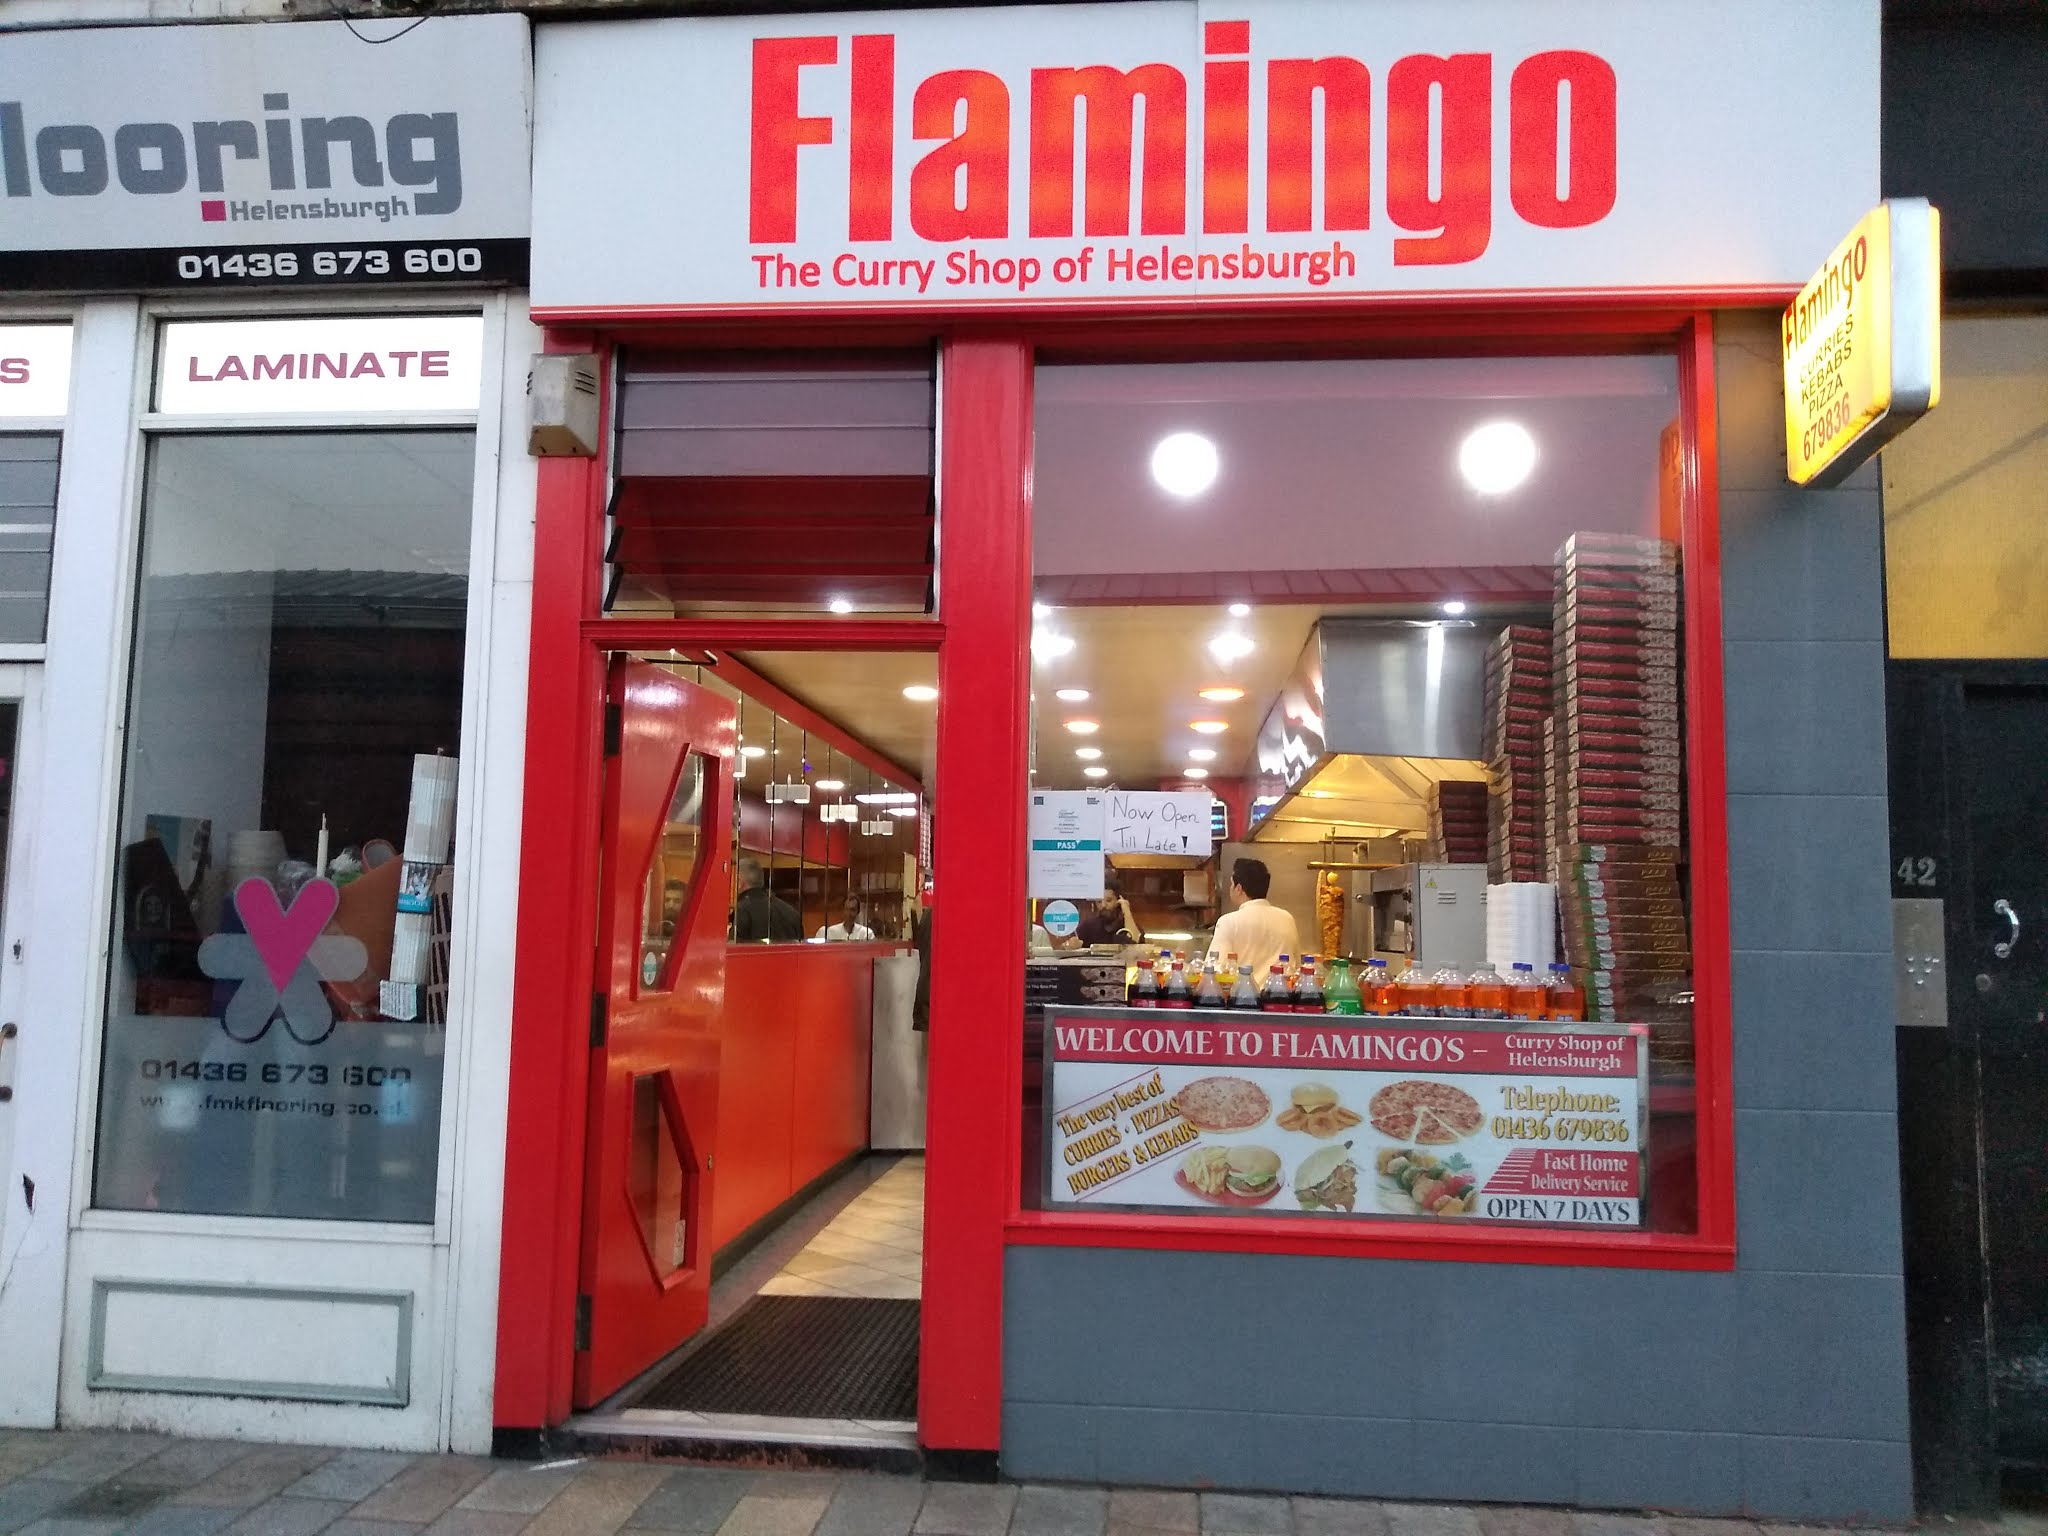 The shopfront of Flamingo restaurant, Helensburgh.